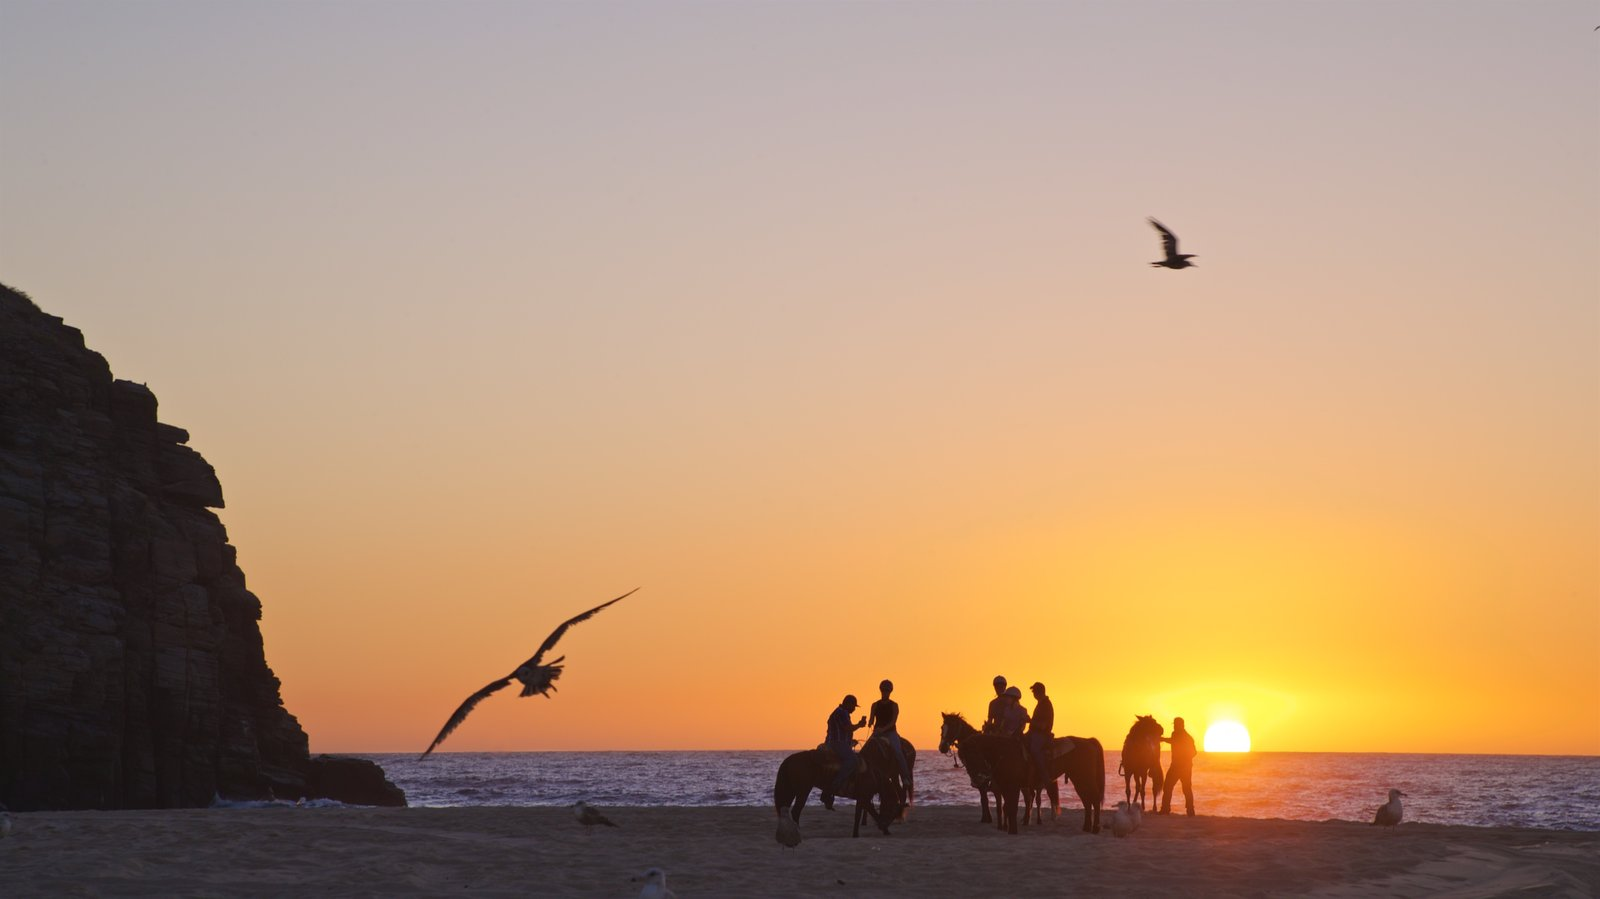 Punta Lobos which includes a sunset, landscape views and horseriding